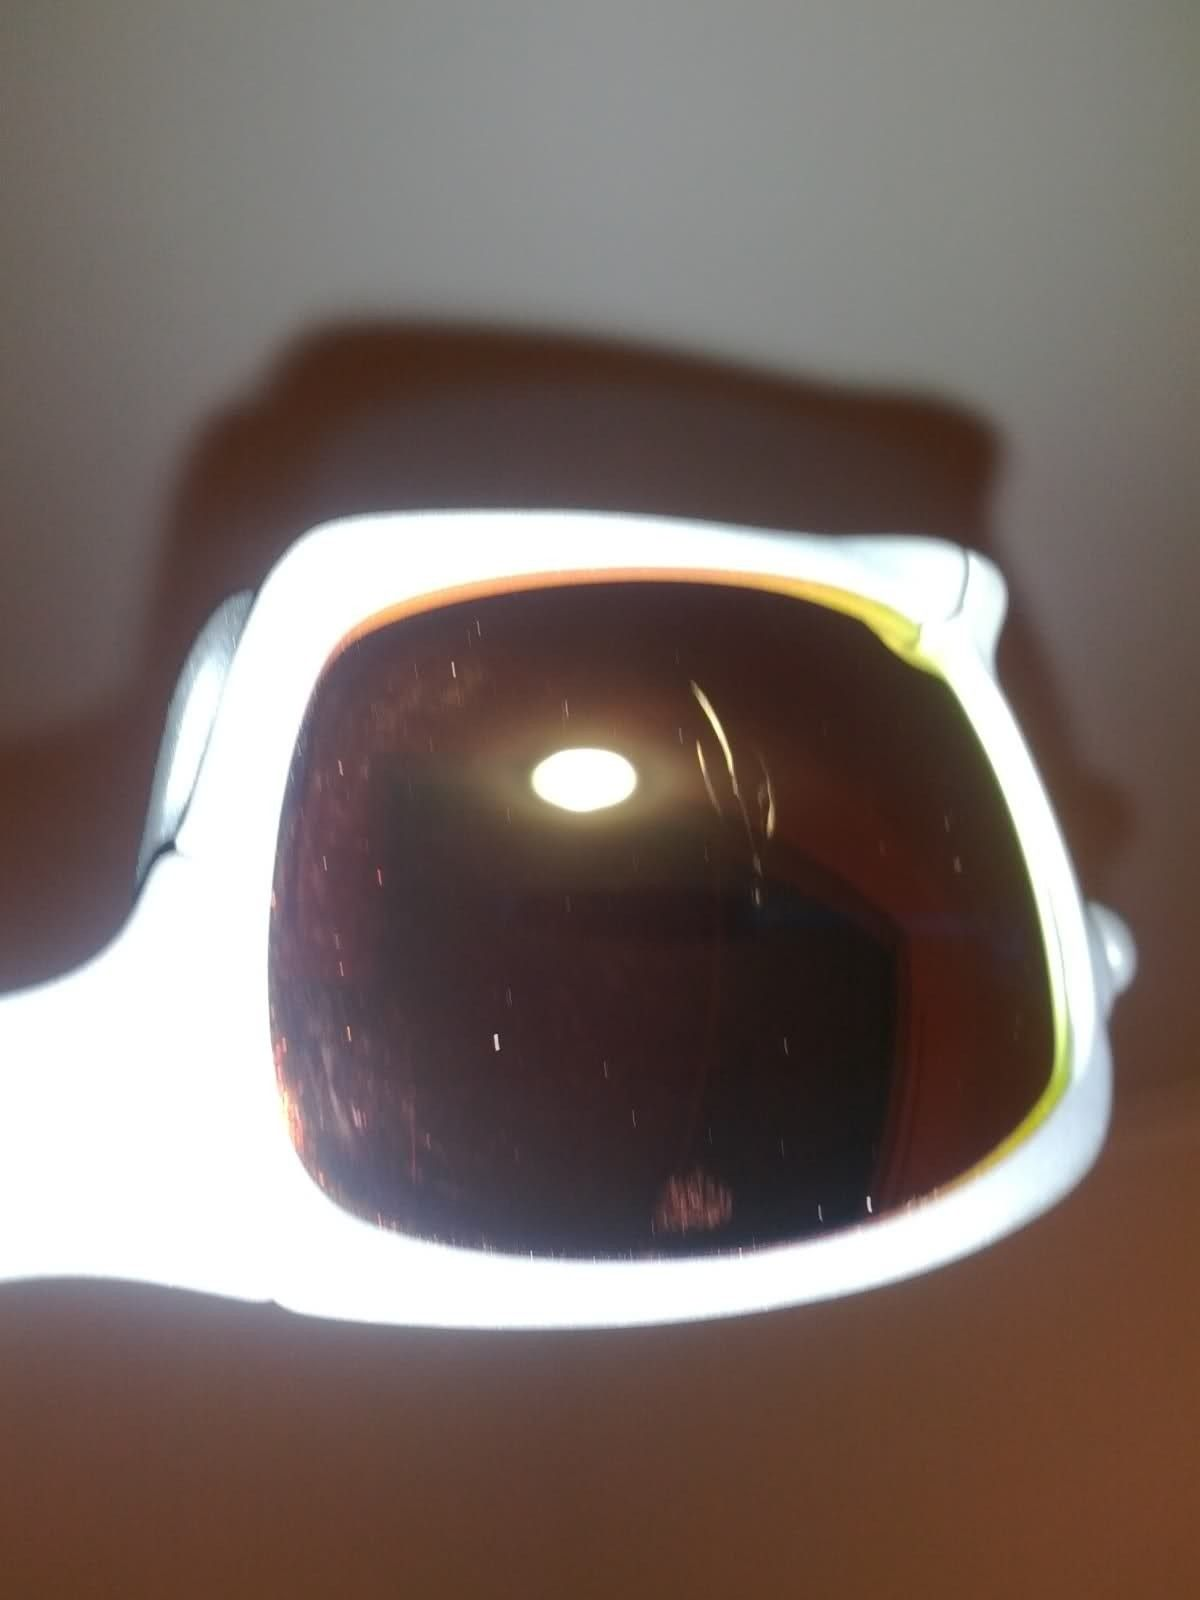 Gutted. Scratched Lens. - 2ro0vw9.jpg